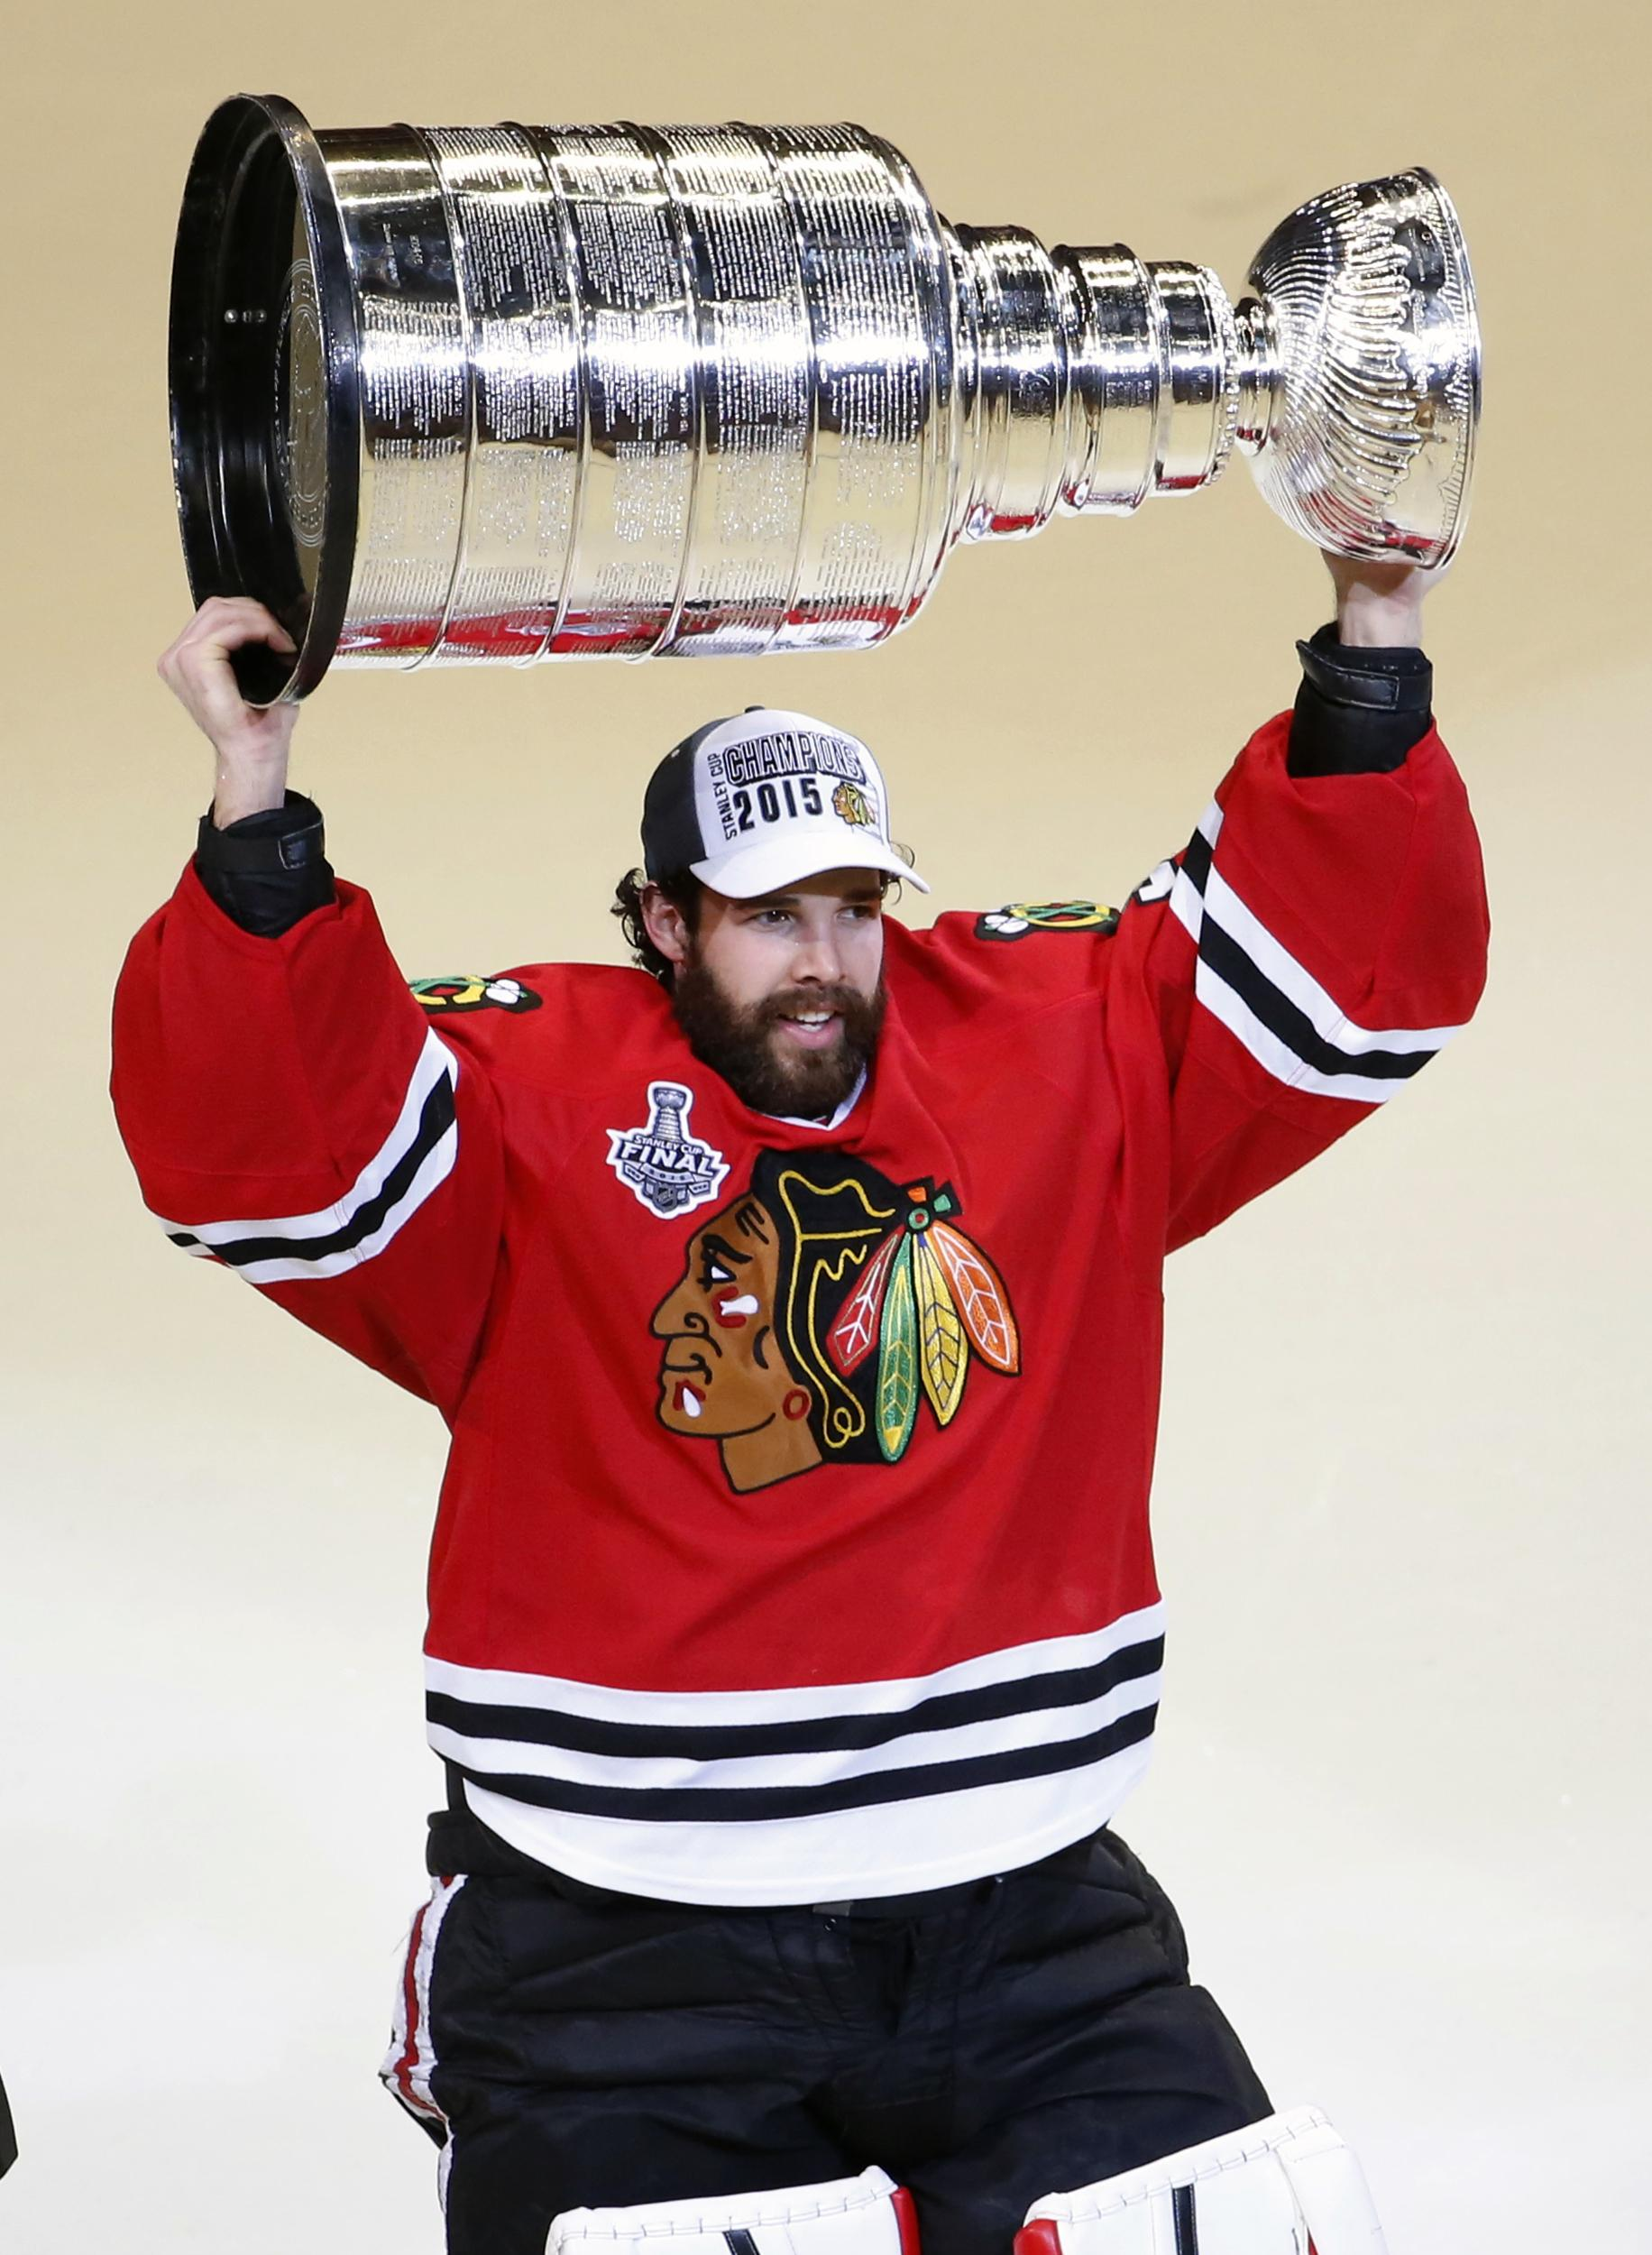 741cd8d1 In this June 10, 2015 photo, Chicago Blackhawks' goalie Corey Crawford  hoists the